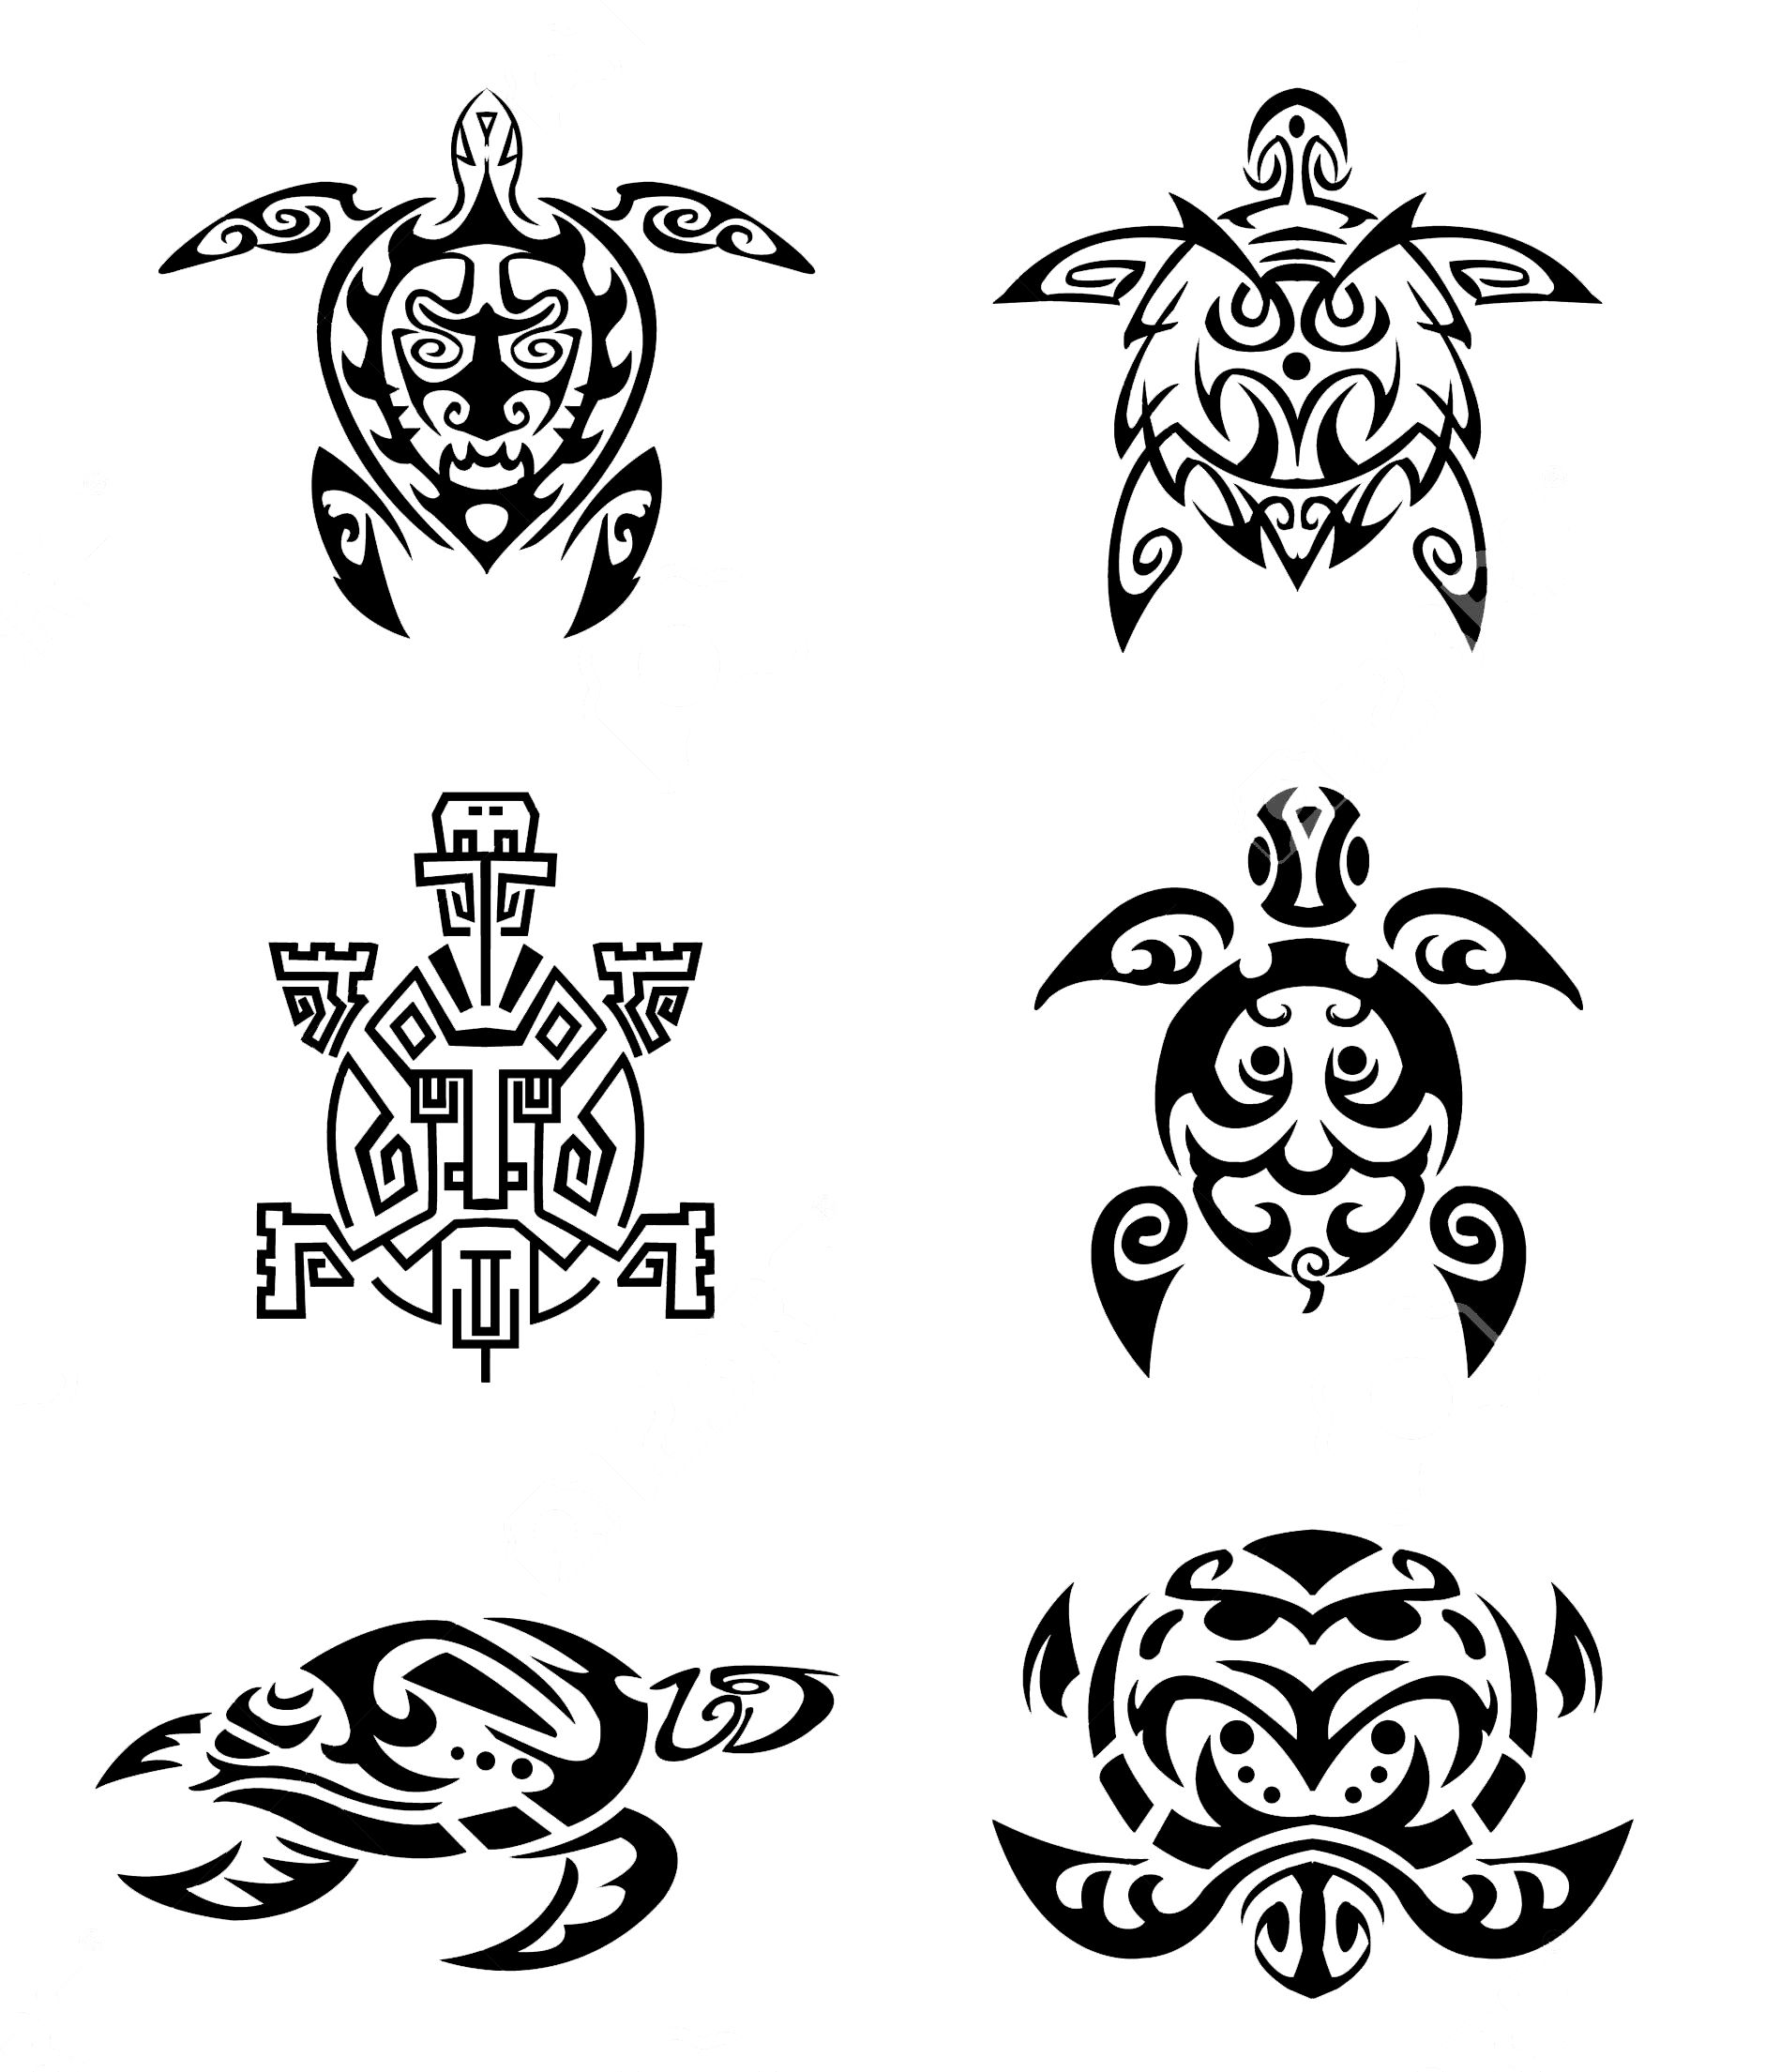 Tortuga conjunto tatuaje tattoo pinterest tattoo for Tortuga maori